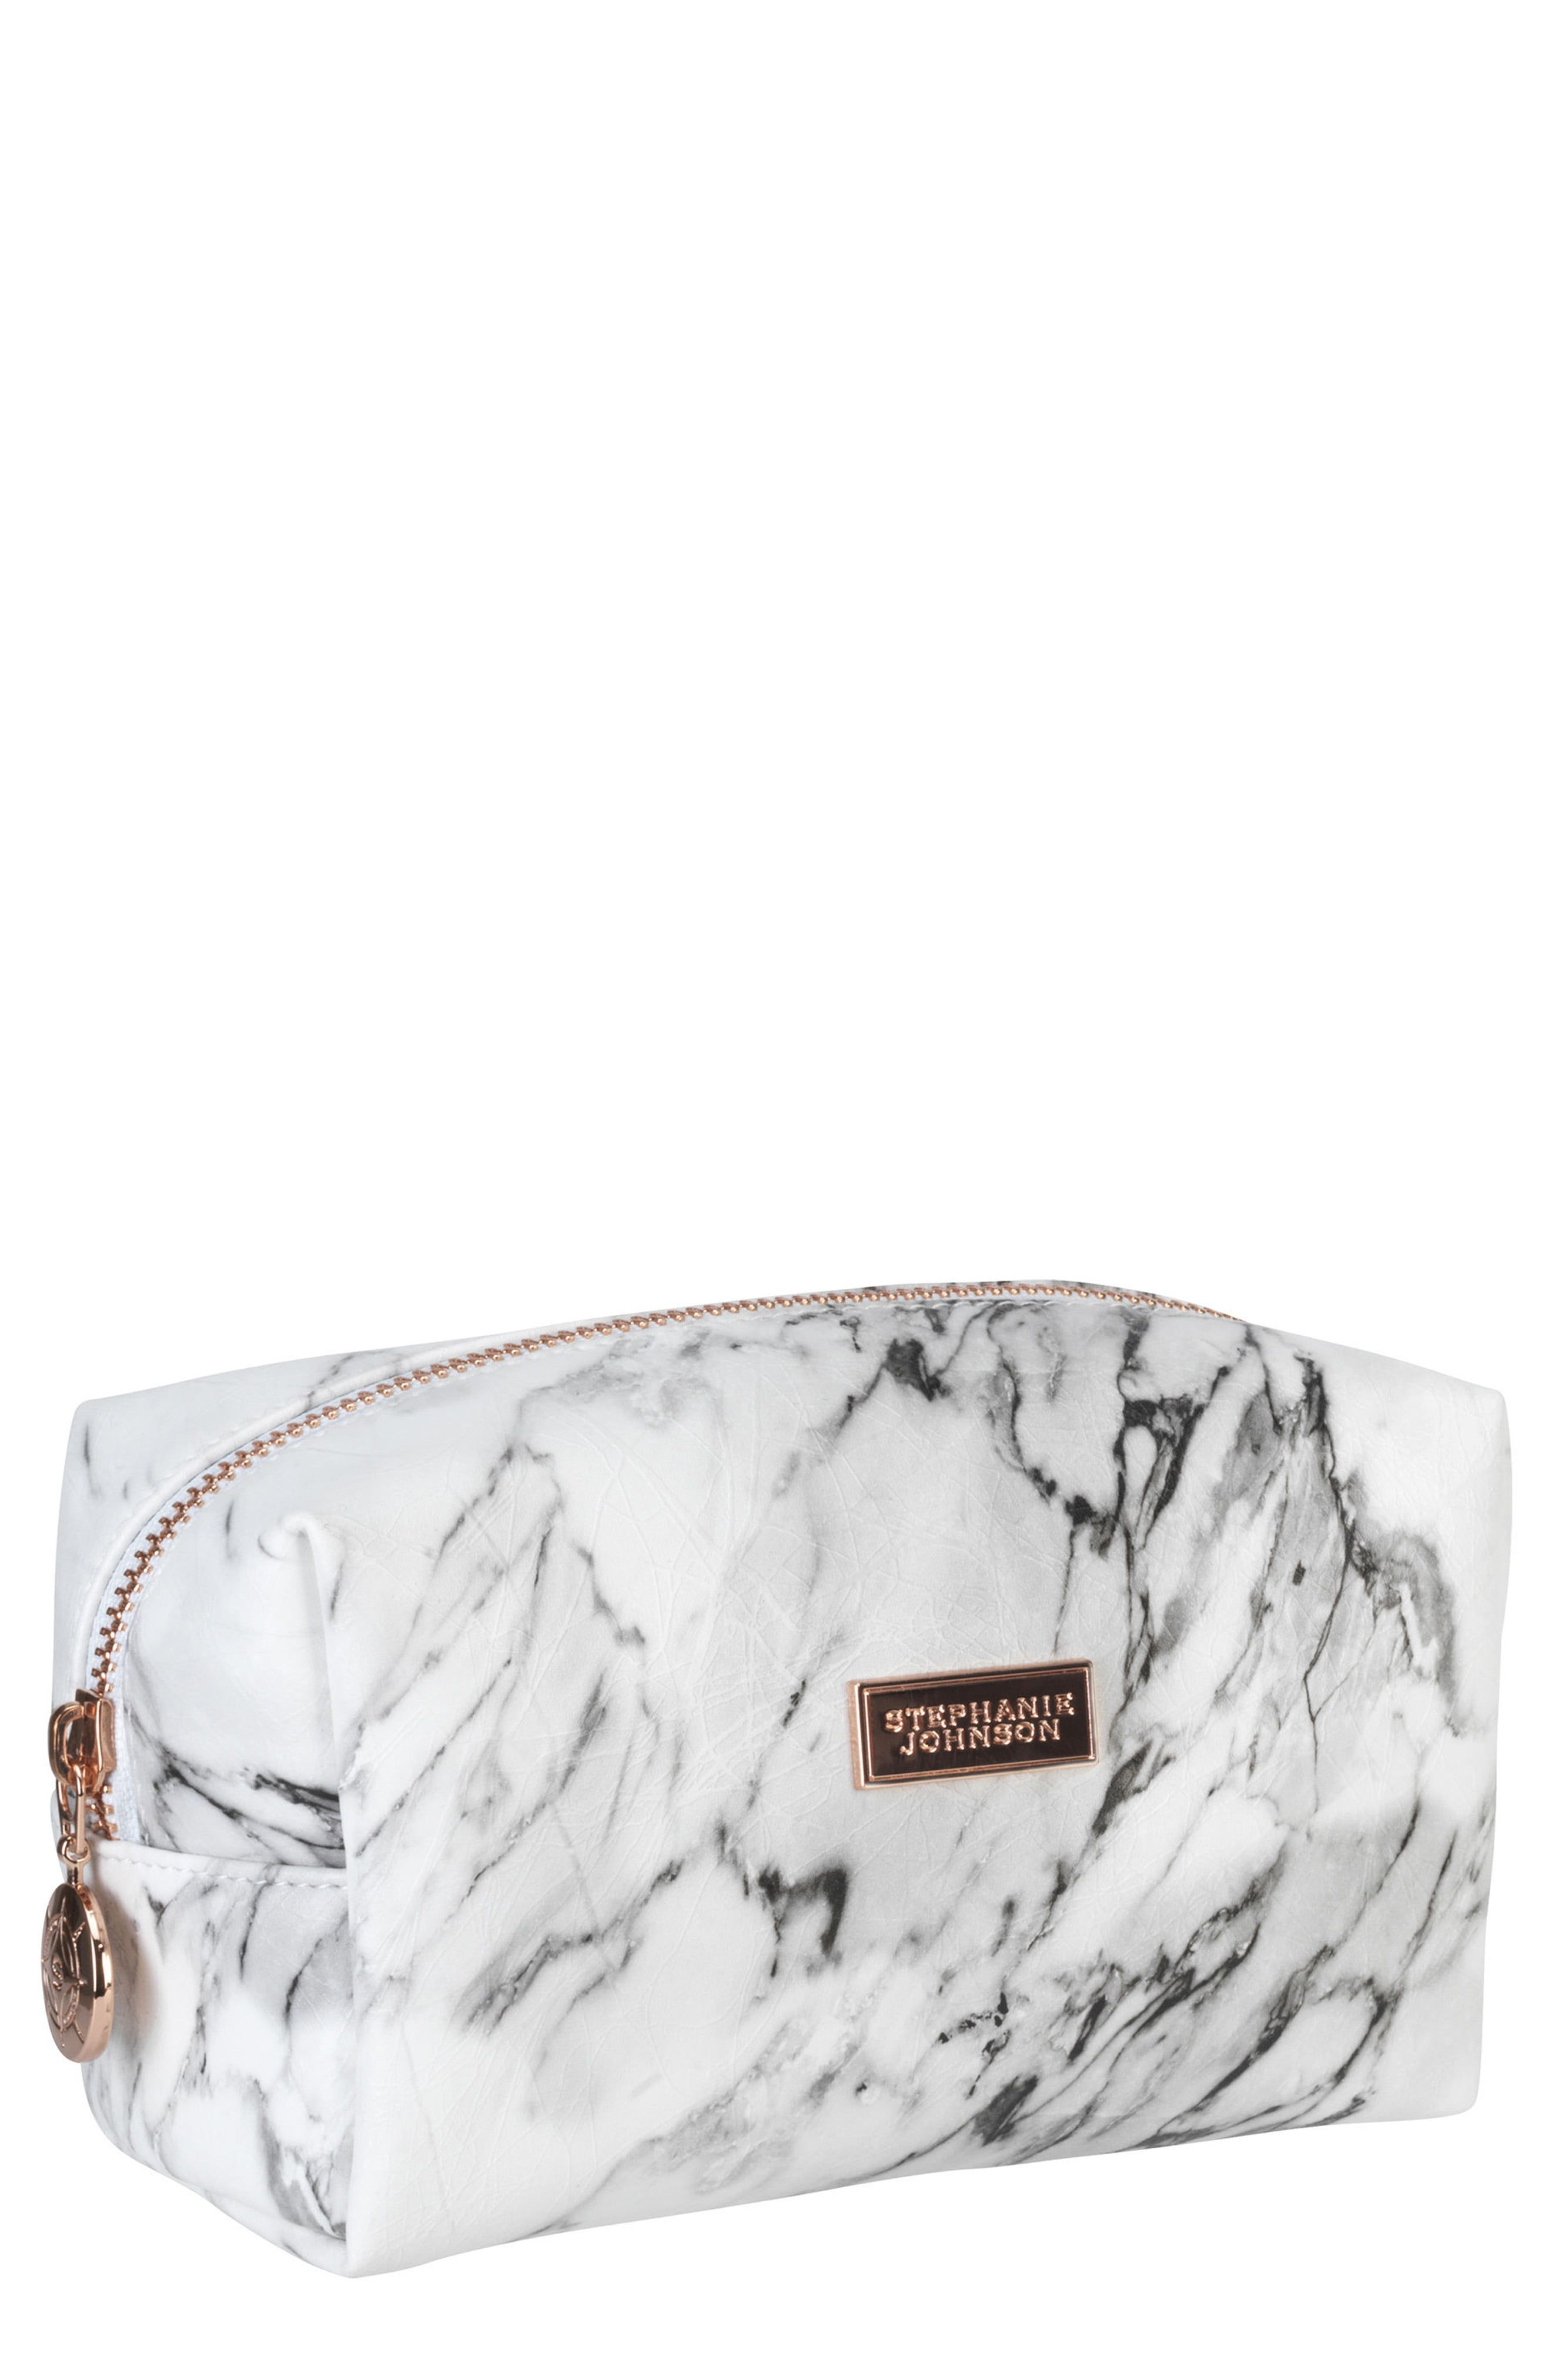 Stephanie Johnson Carrara Grey Iris Small Cosmetics Bag